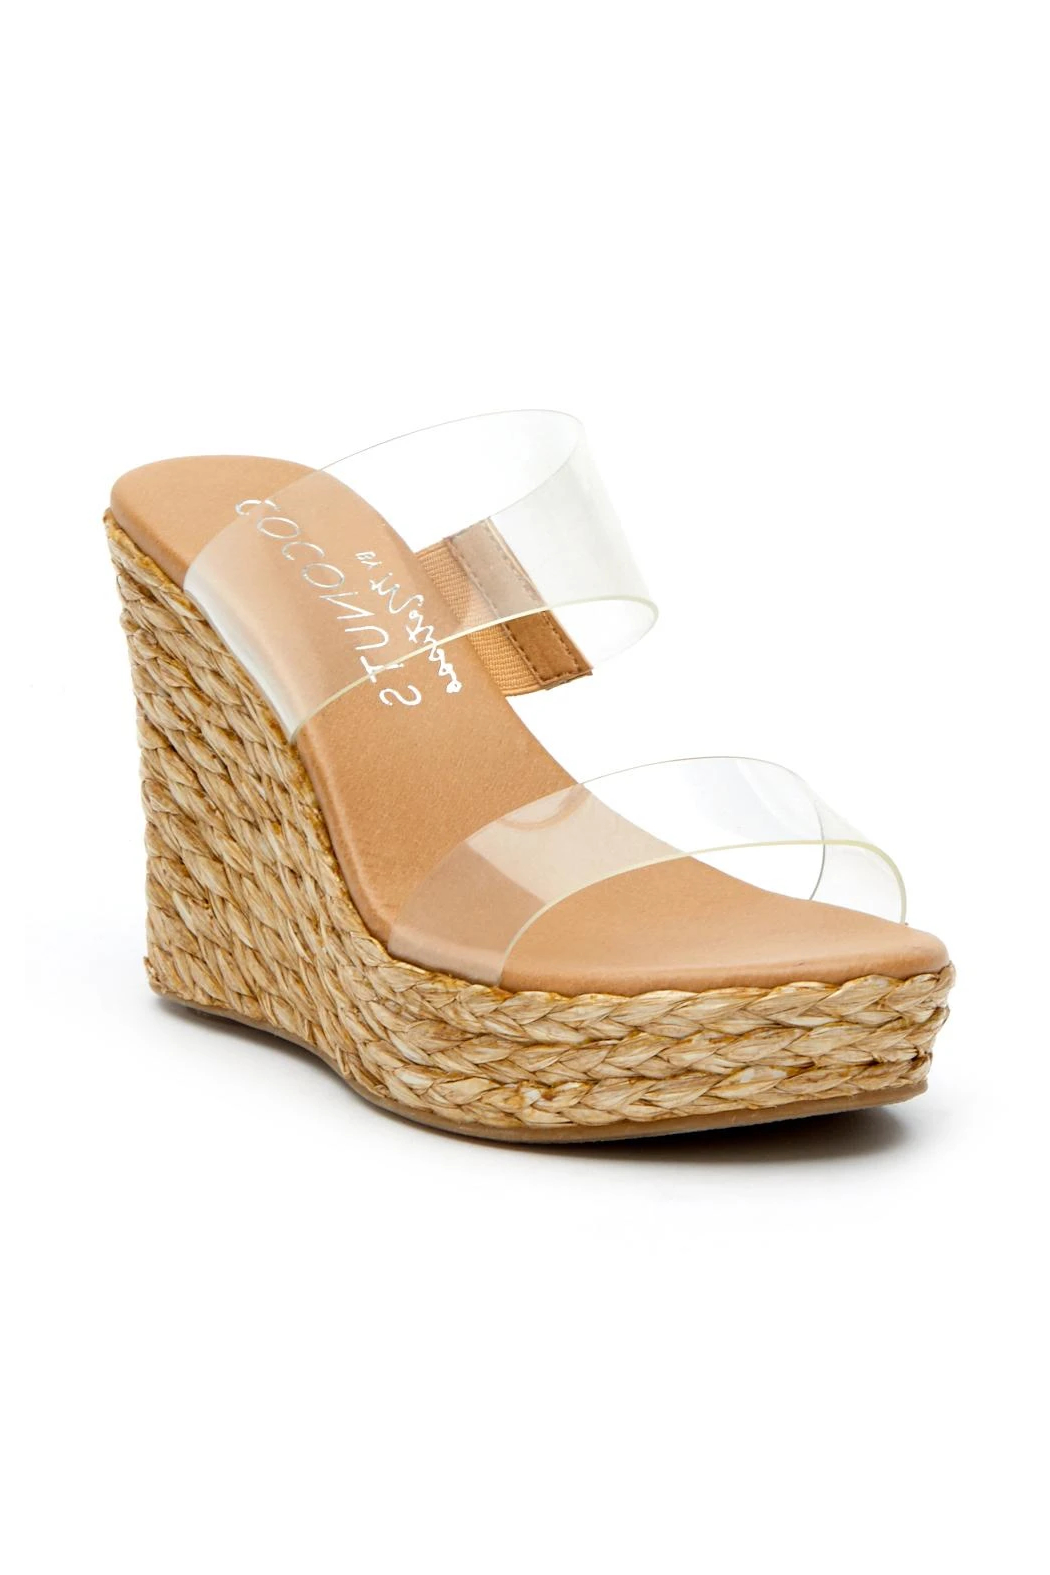 Coconuts by Matisse Bungalow Espadrille Wedge - Side Cropped Image